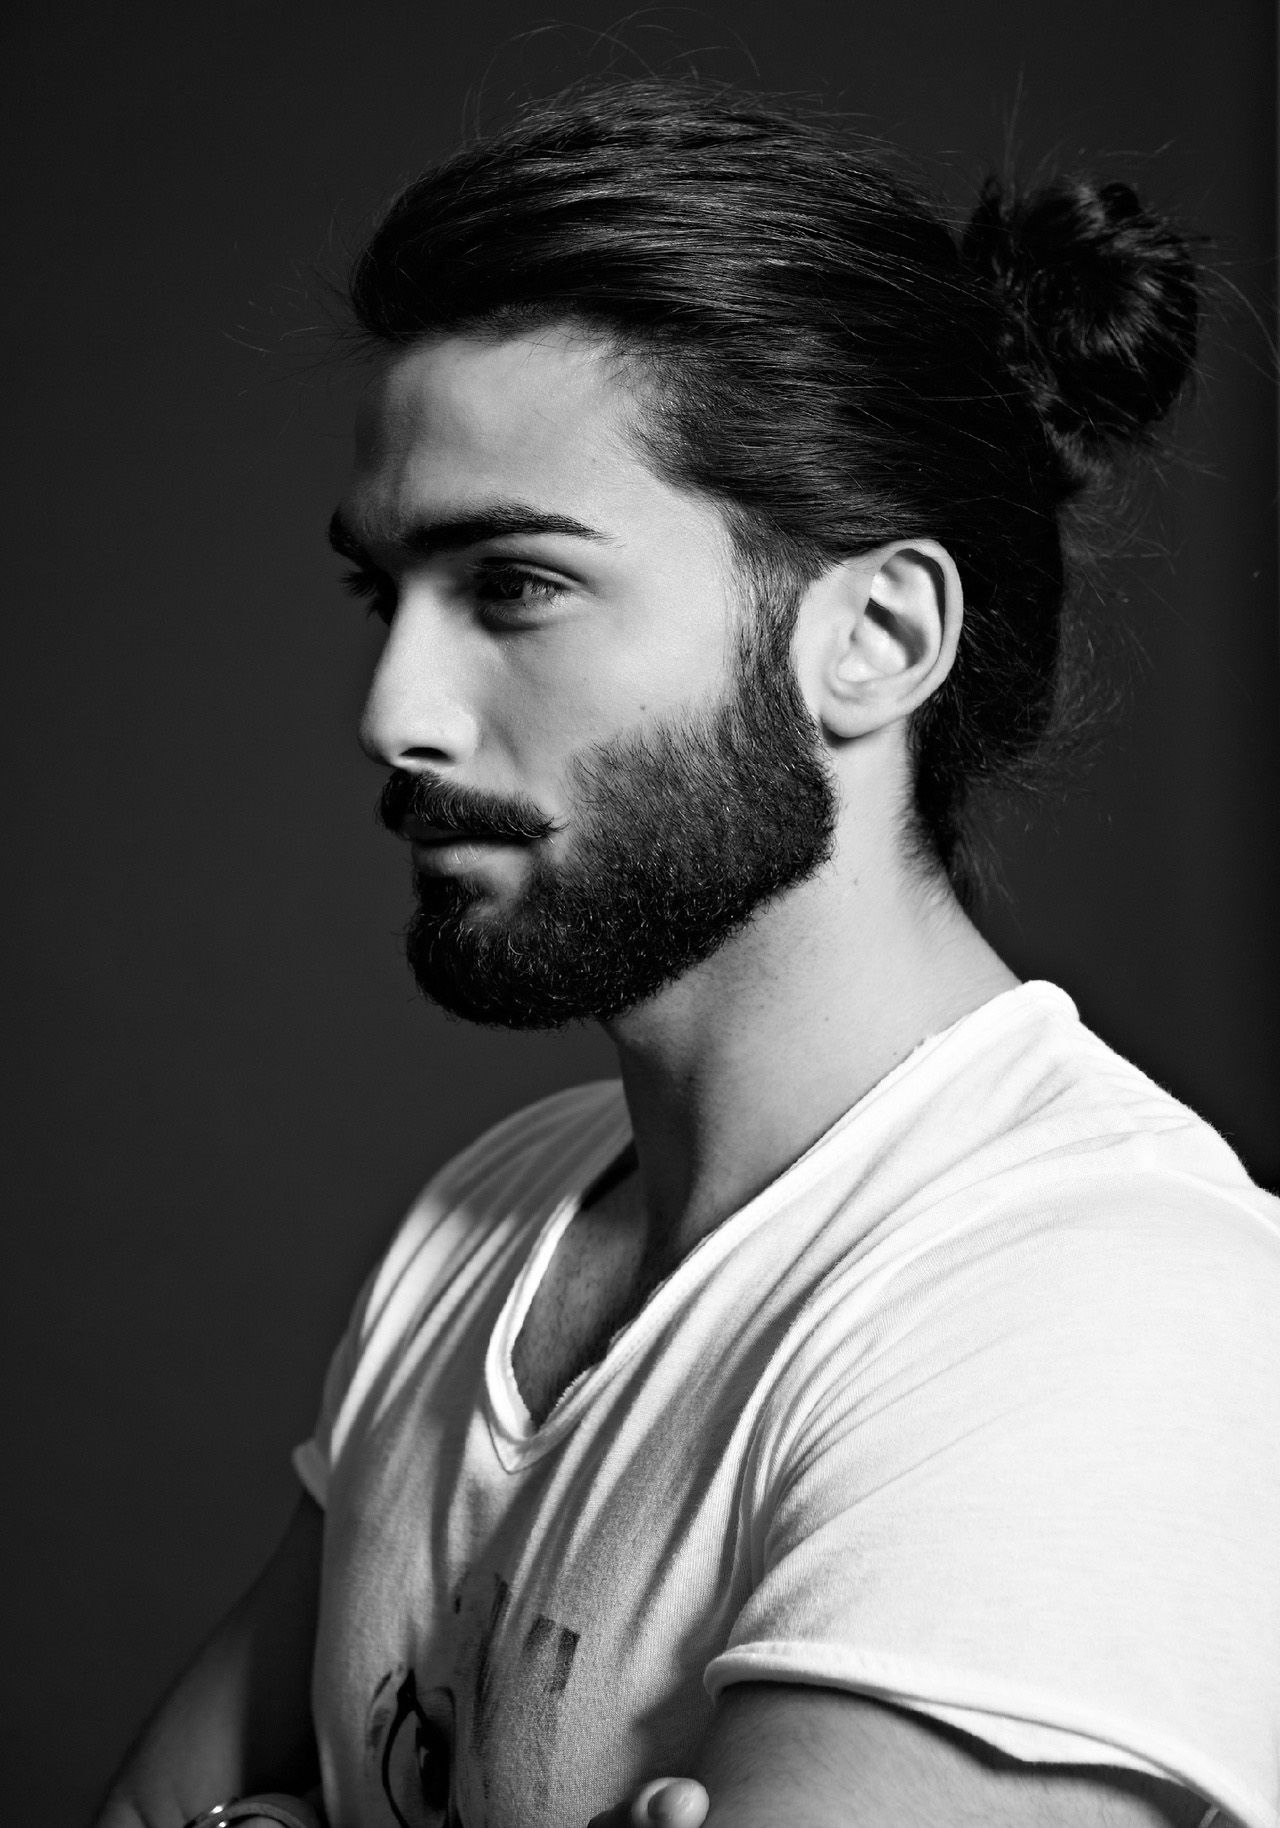 Cool 50 Trendy Mens Hairstyles For Long Hair In 2016 Check More At Http Machohairstyles Com Bes Long Hair Styles Men Beard Styles For Men Man Bun Hairstyles